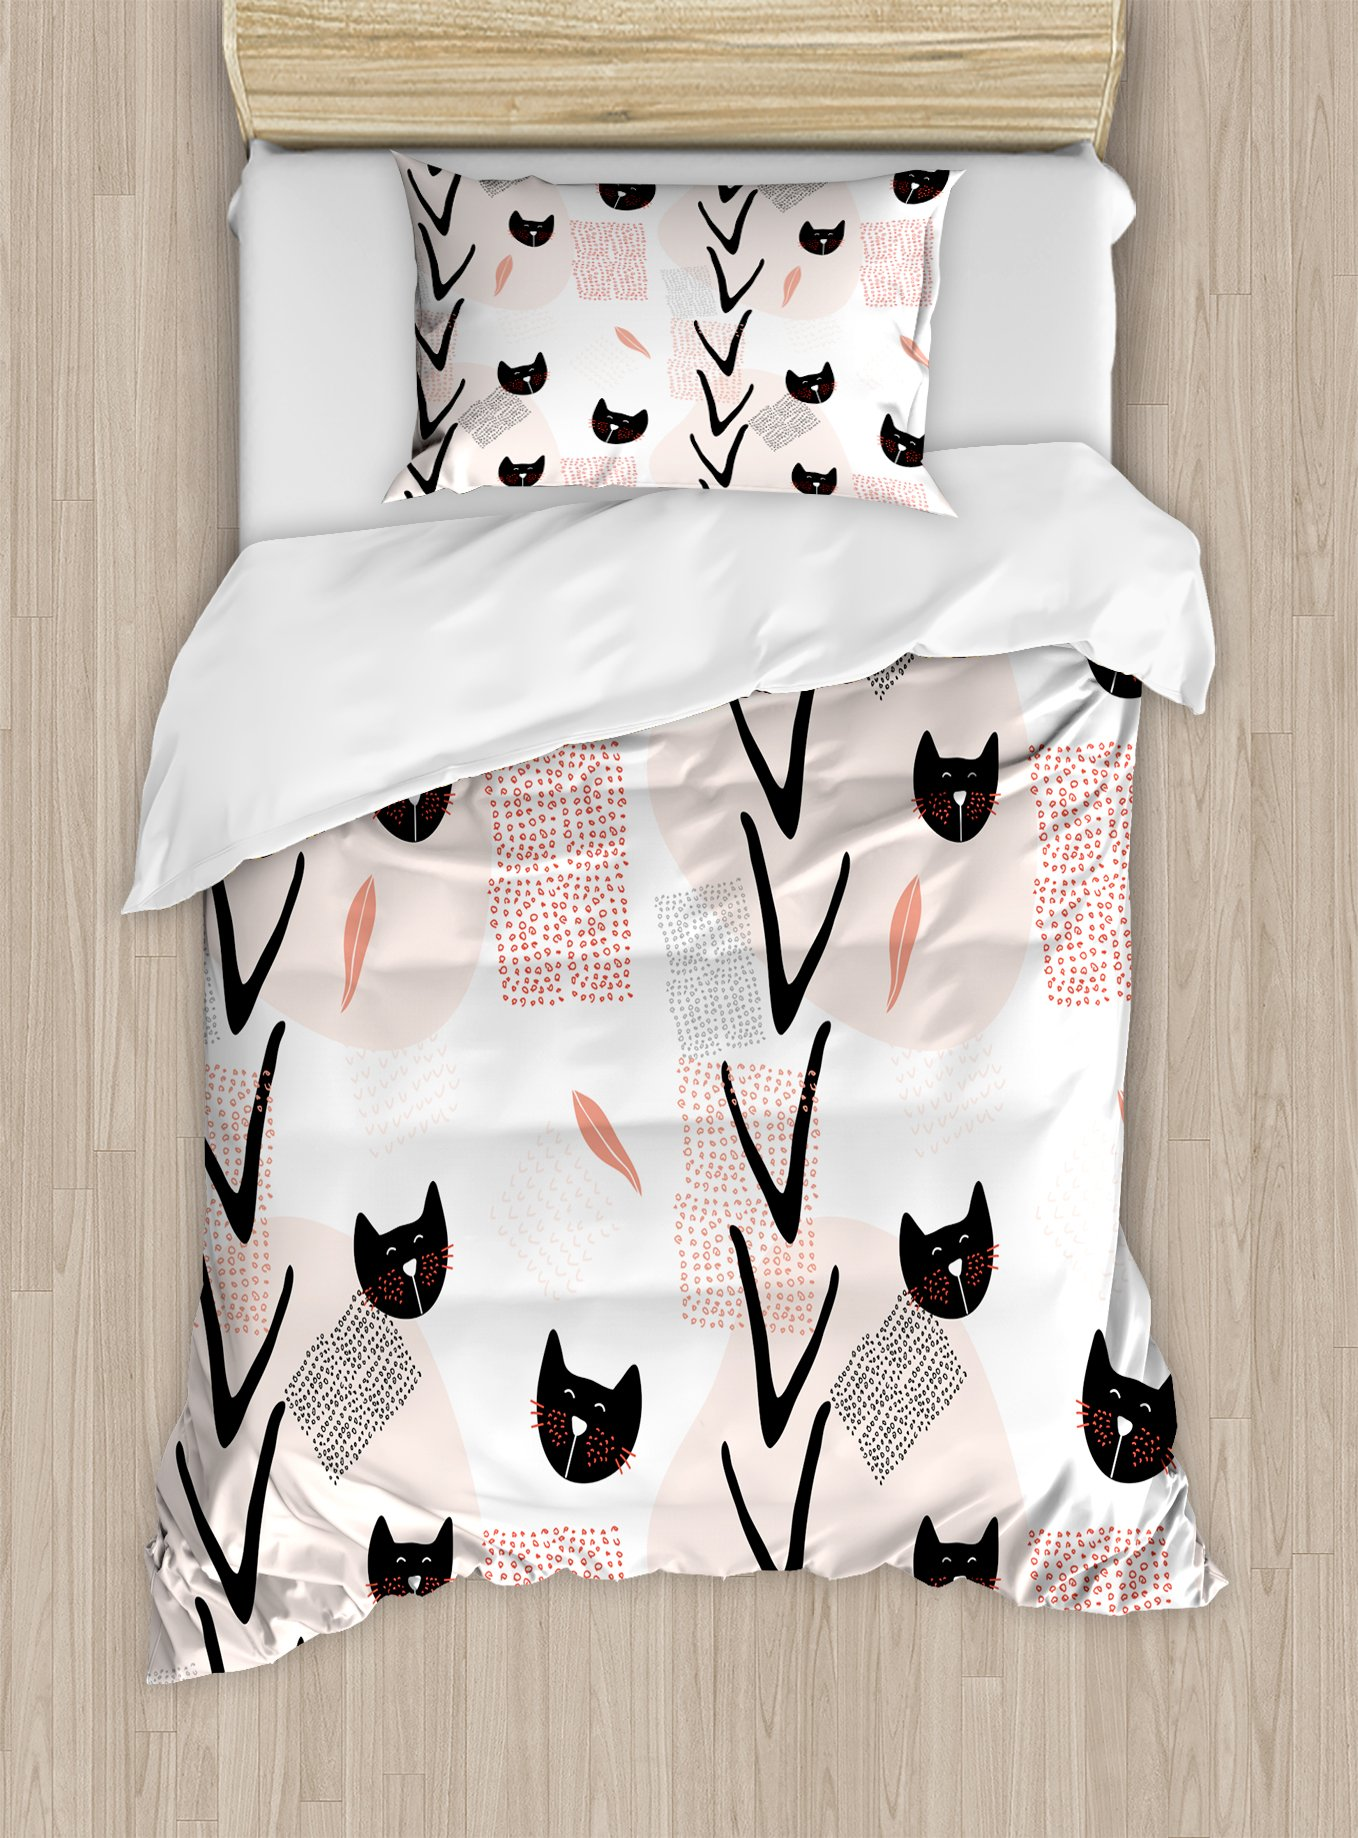 Ambesonne Modern Duvet Cover Set Twin Size, Cute Cat Faces with Dotted Whiskers Kittens Animals Kids Nursery Theme, Decorative 2 Piece Bedding Set with 1 Pillow Sham, Dark Coral Black Peach by Ambesonne